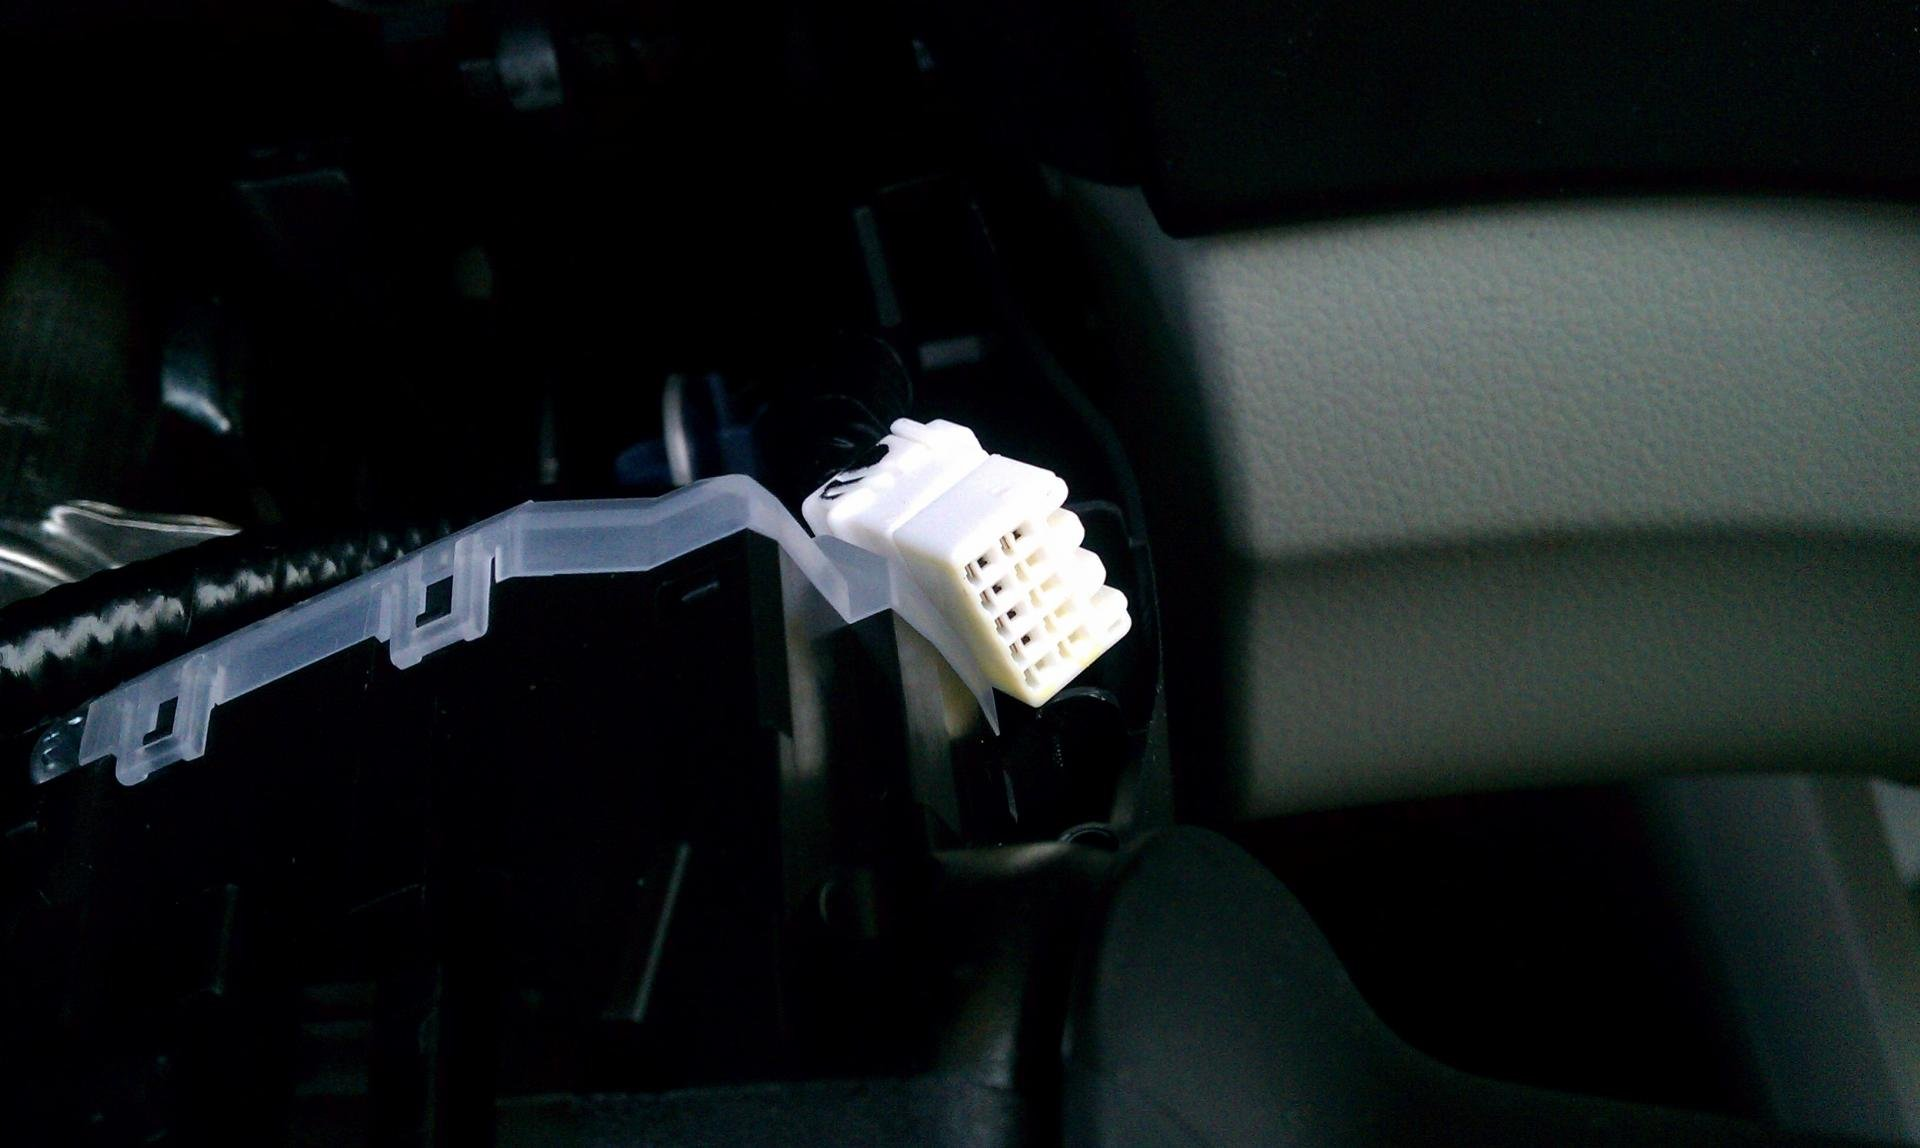 How to change replace install column head light wiper switch honda - Diy Variable Intermittent Wiper Install Imag0376 Jpg